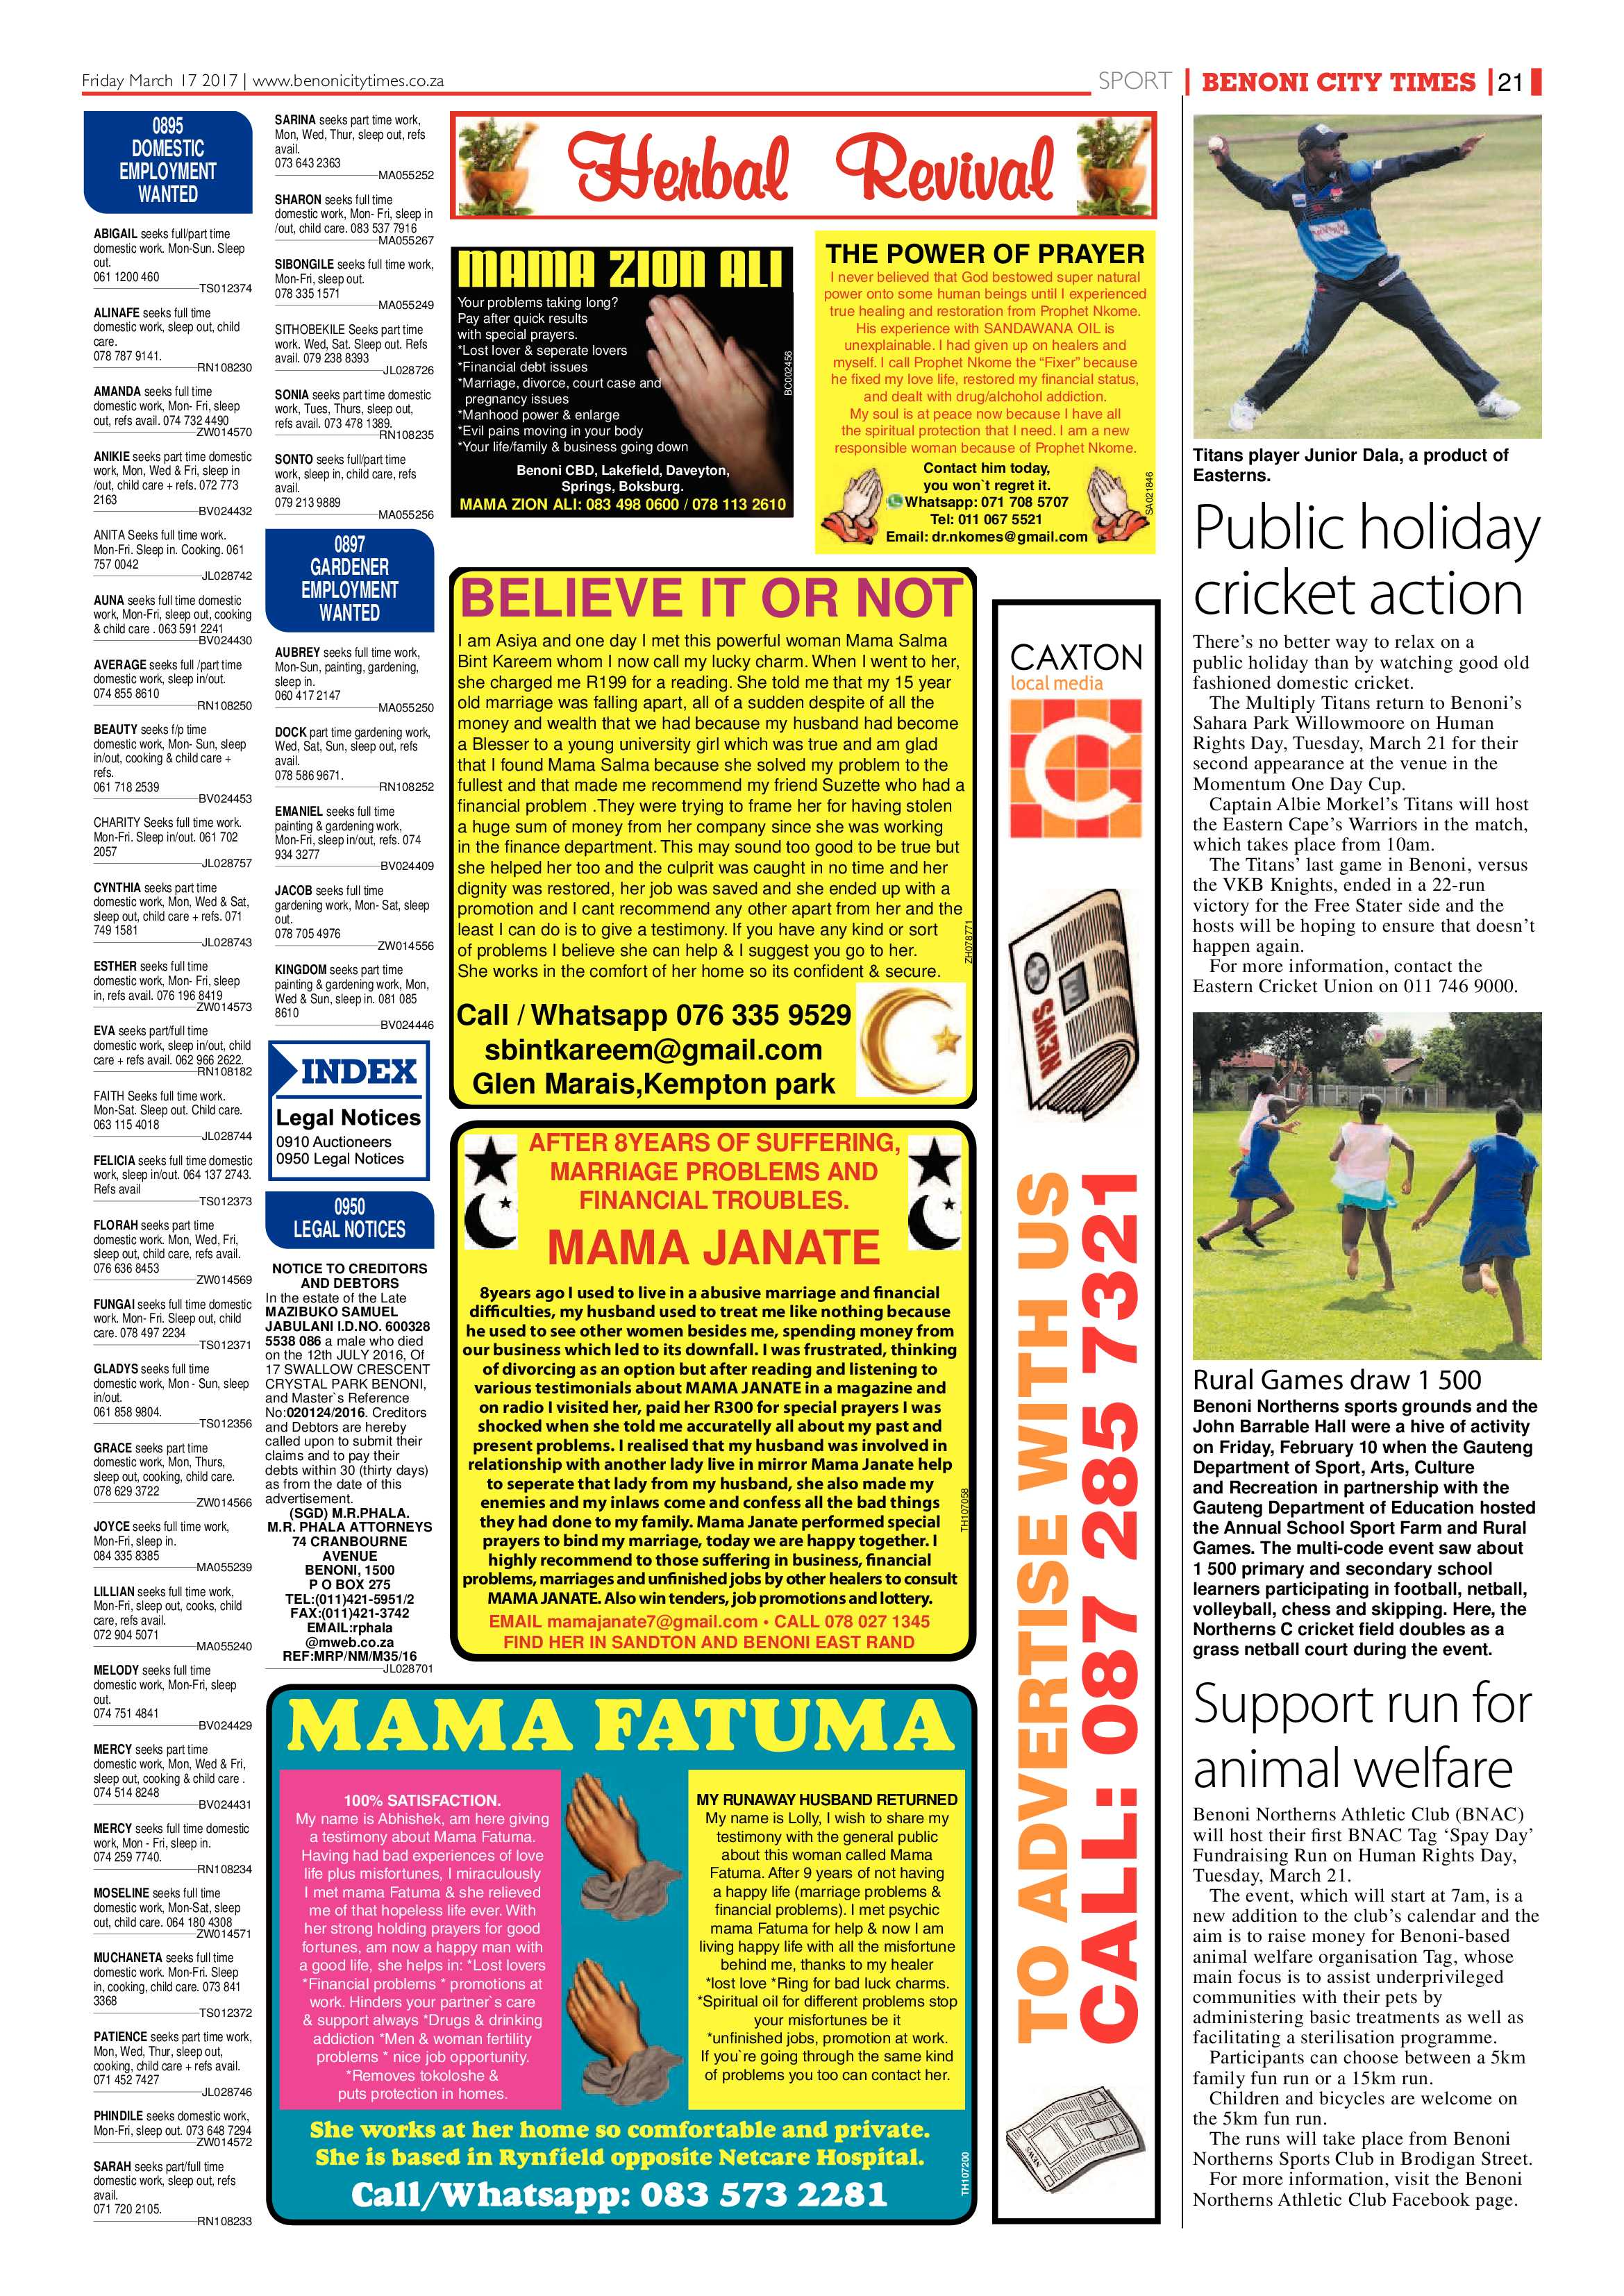 benoni-city-times-16-march-2017-epapers-page-21